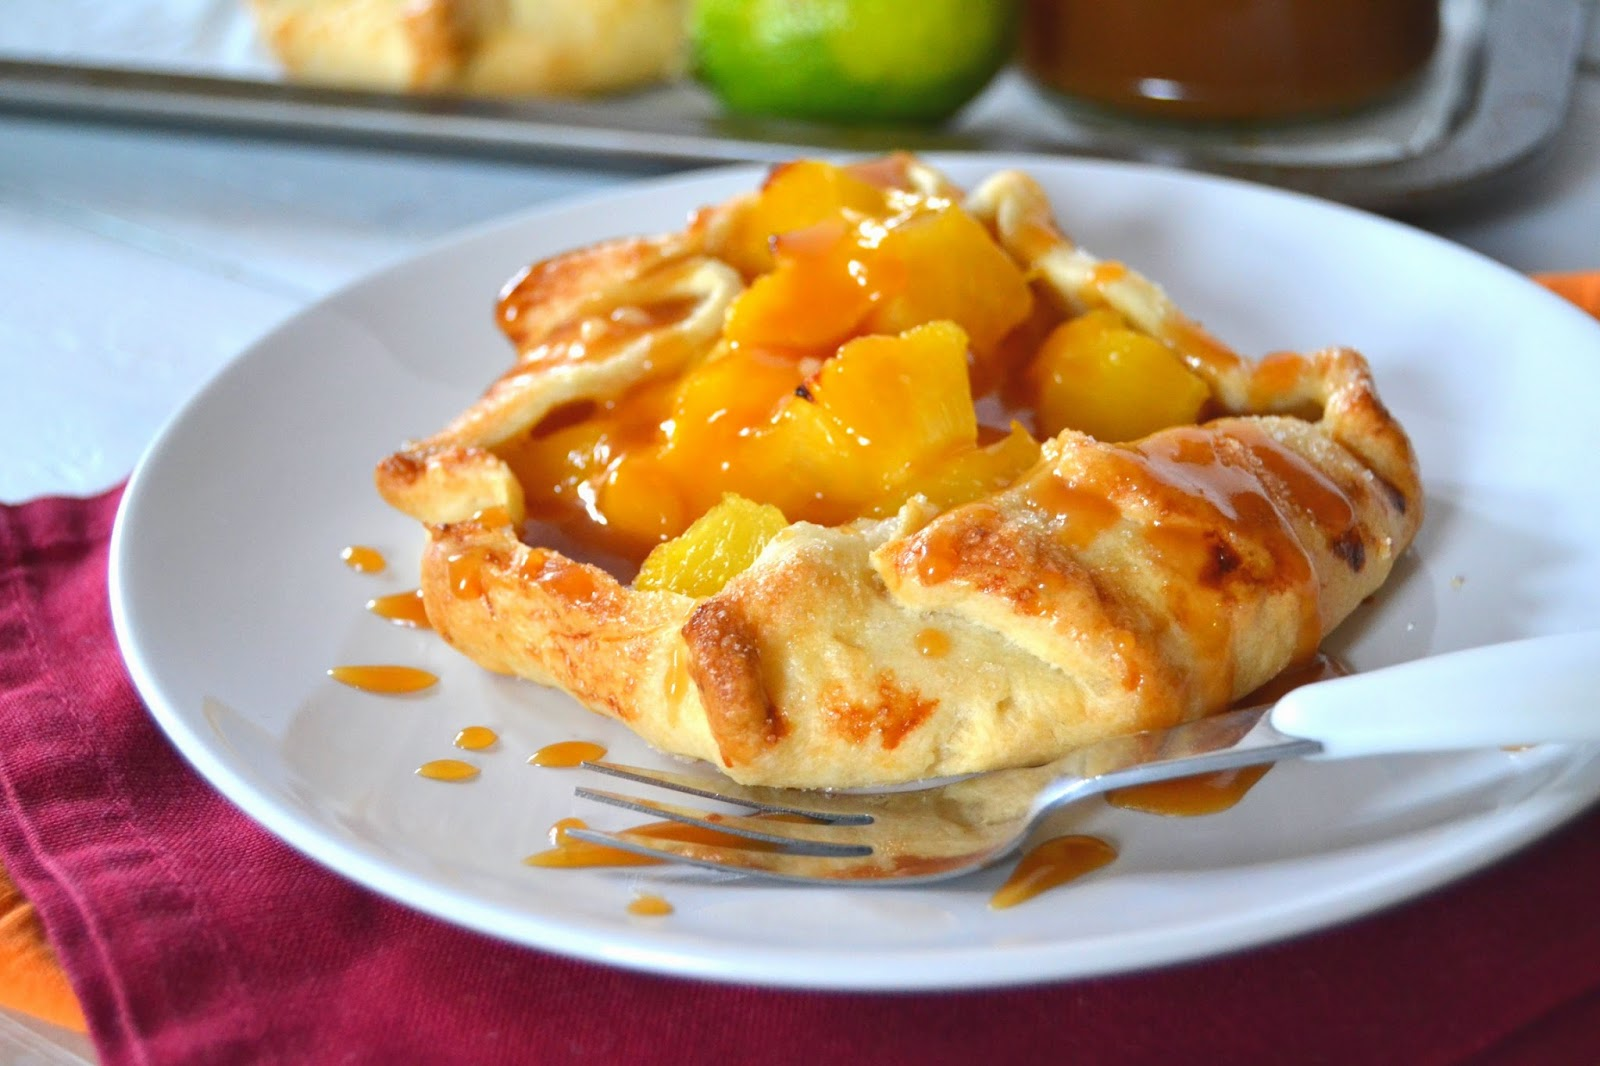 Mango & Pineapple Galette with Limed Caramel Sauce